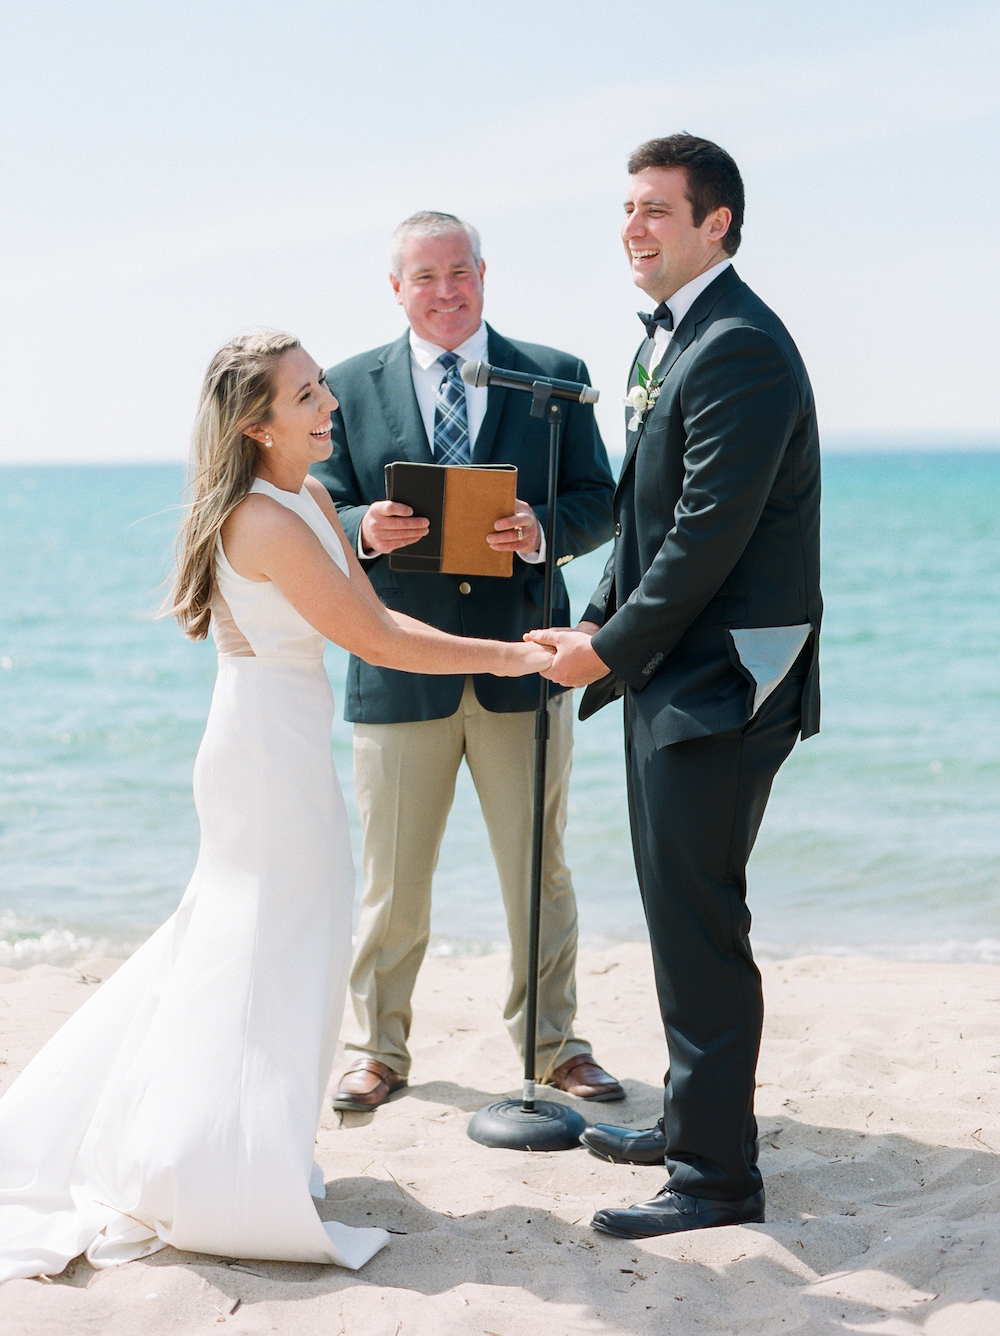 A couple smiling during their lake Michigan wedding